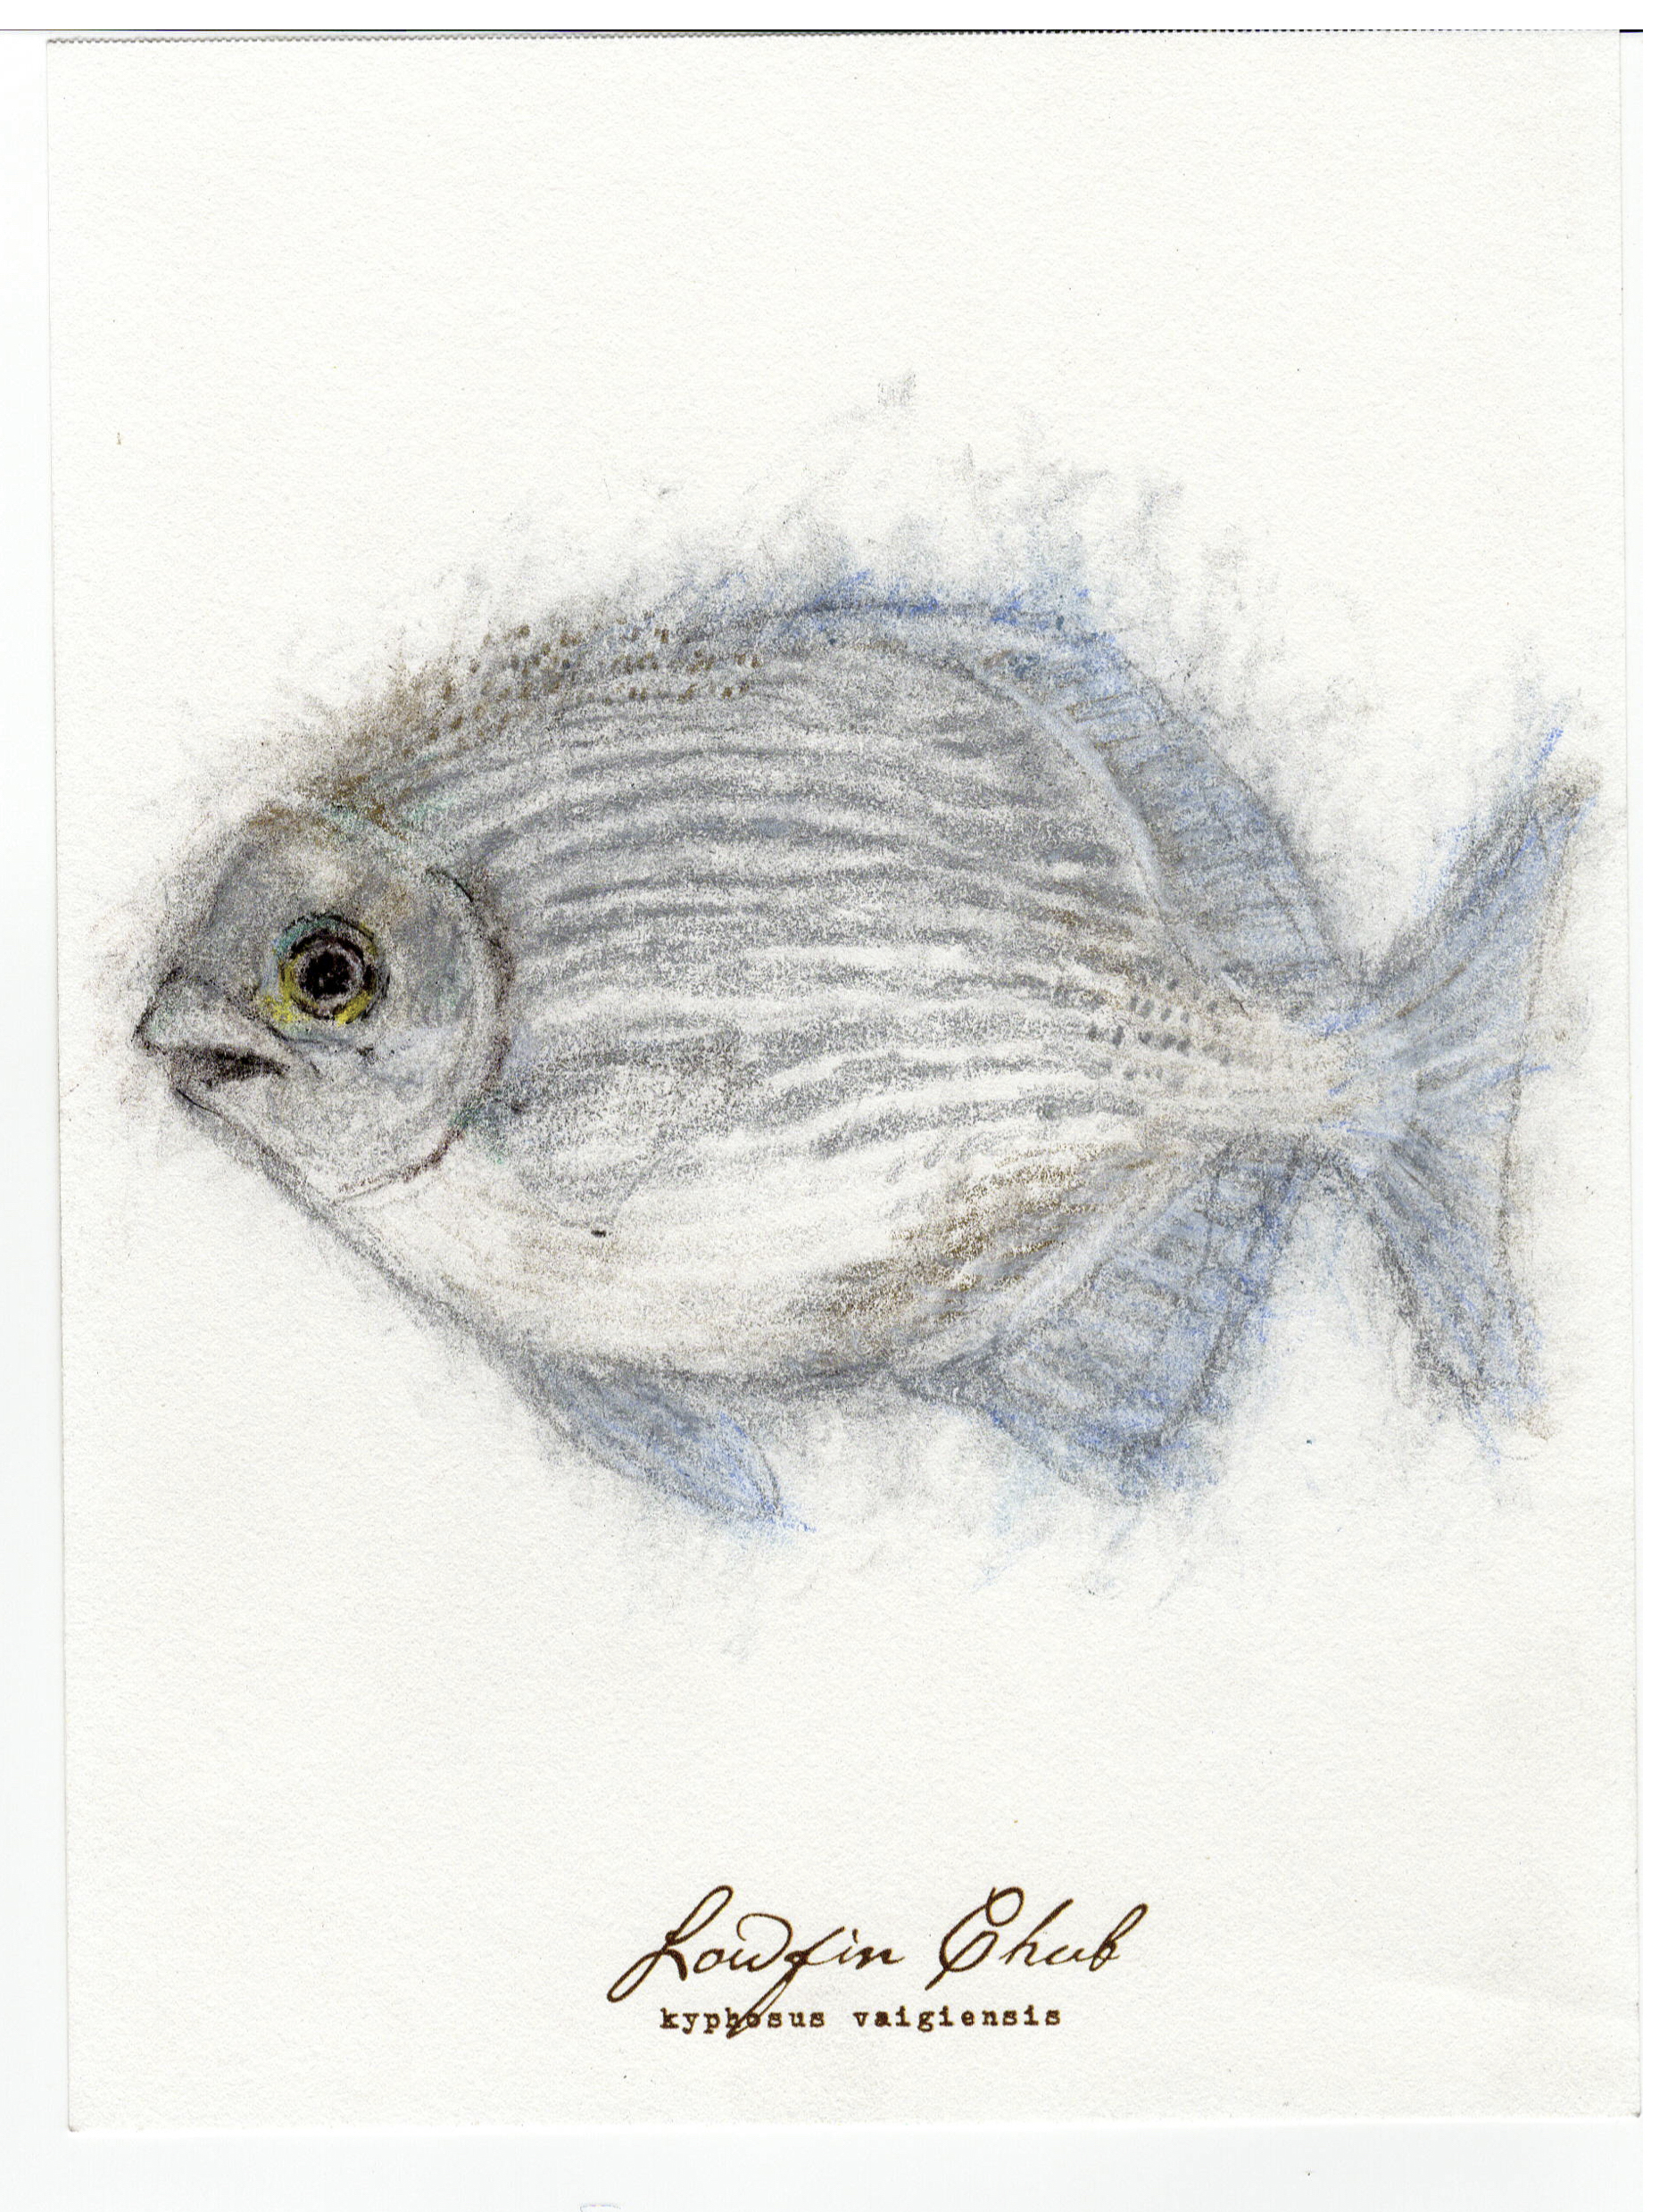 """Lowfin Chub, 2017 6"""" x 8"""" charcoal & prismacolor on paper"""